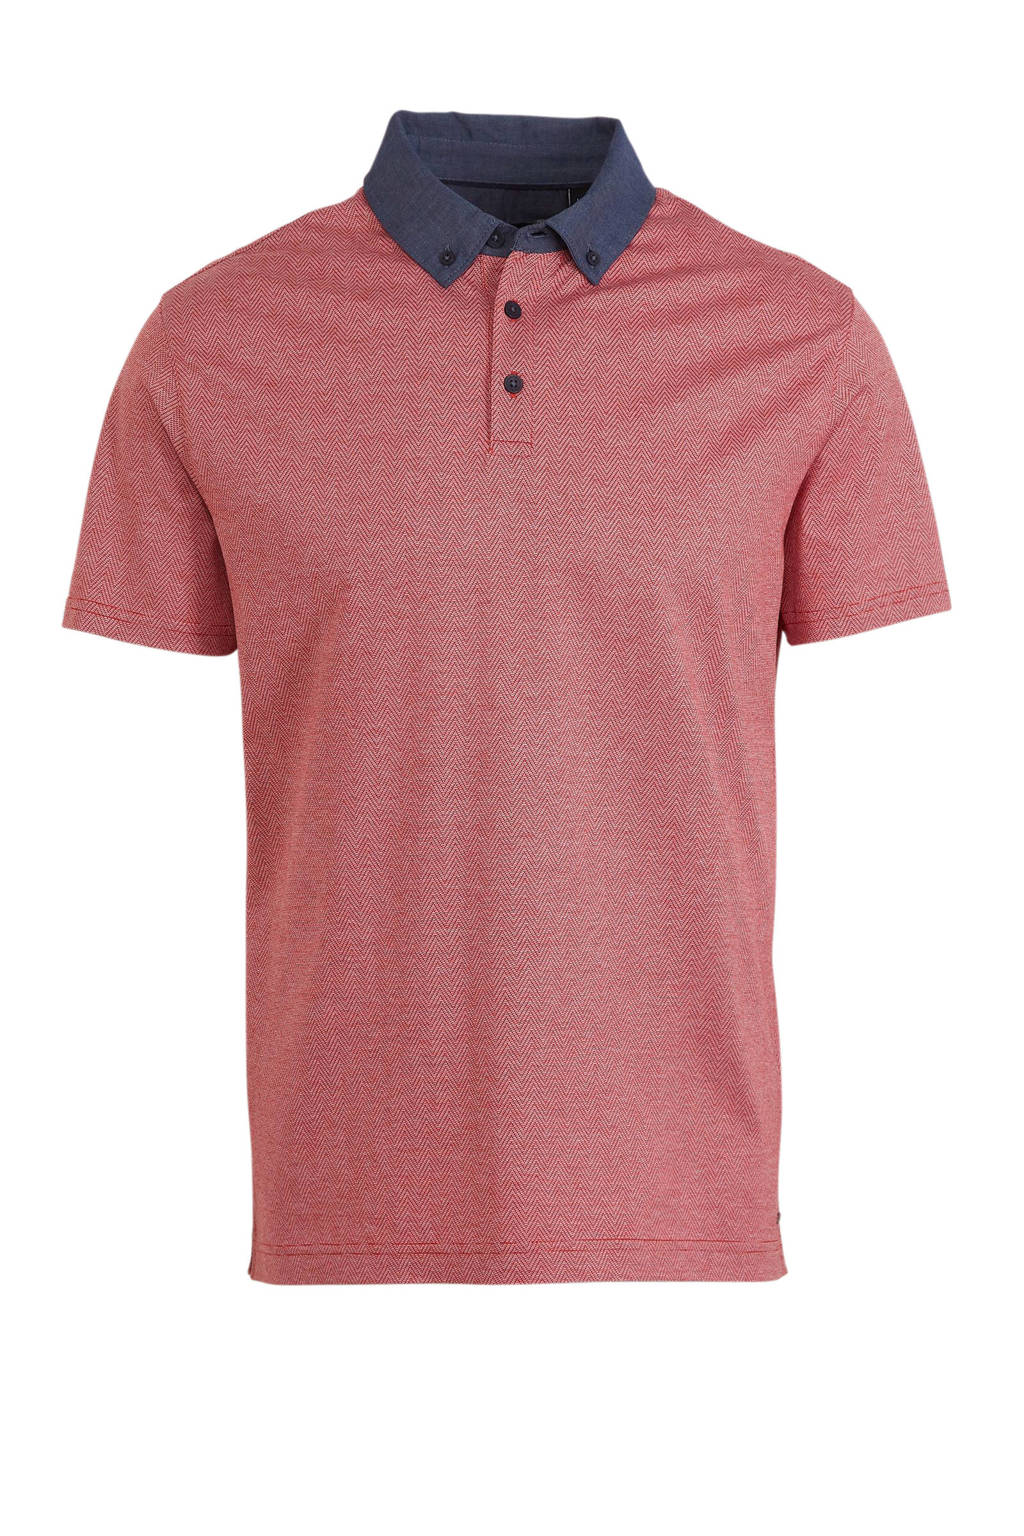 C&A regular fit polo rood/blauw, Rood/blauw